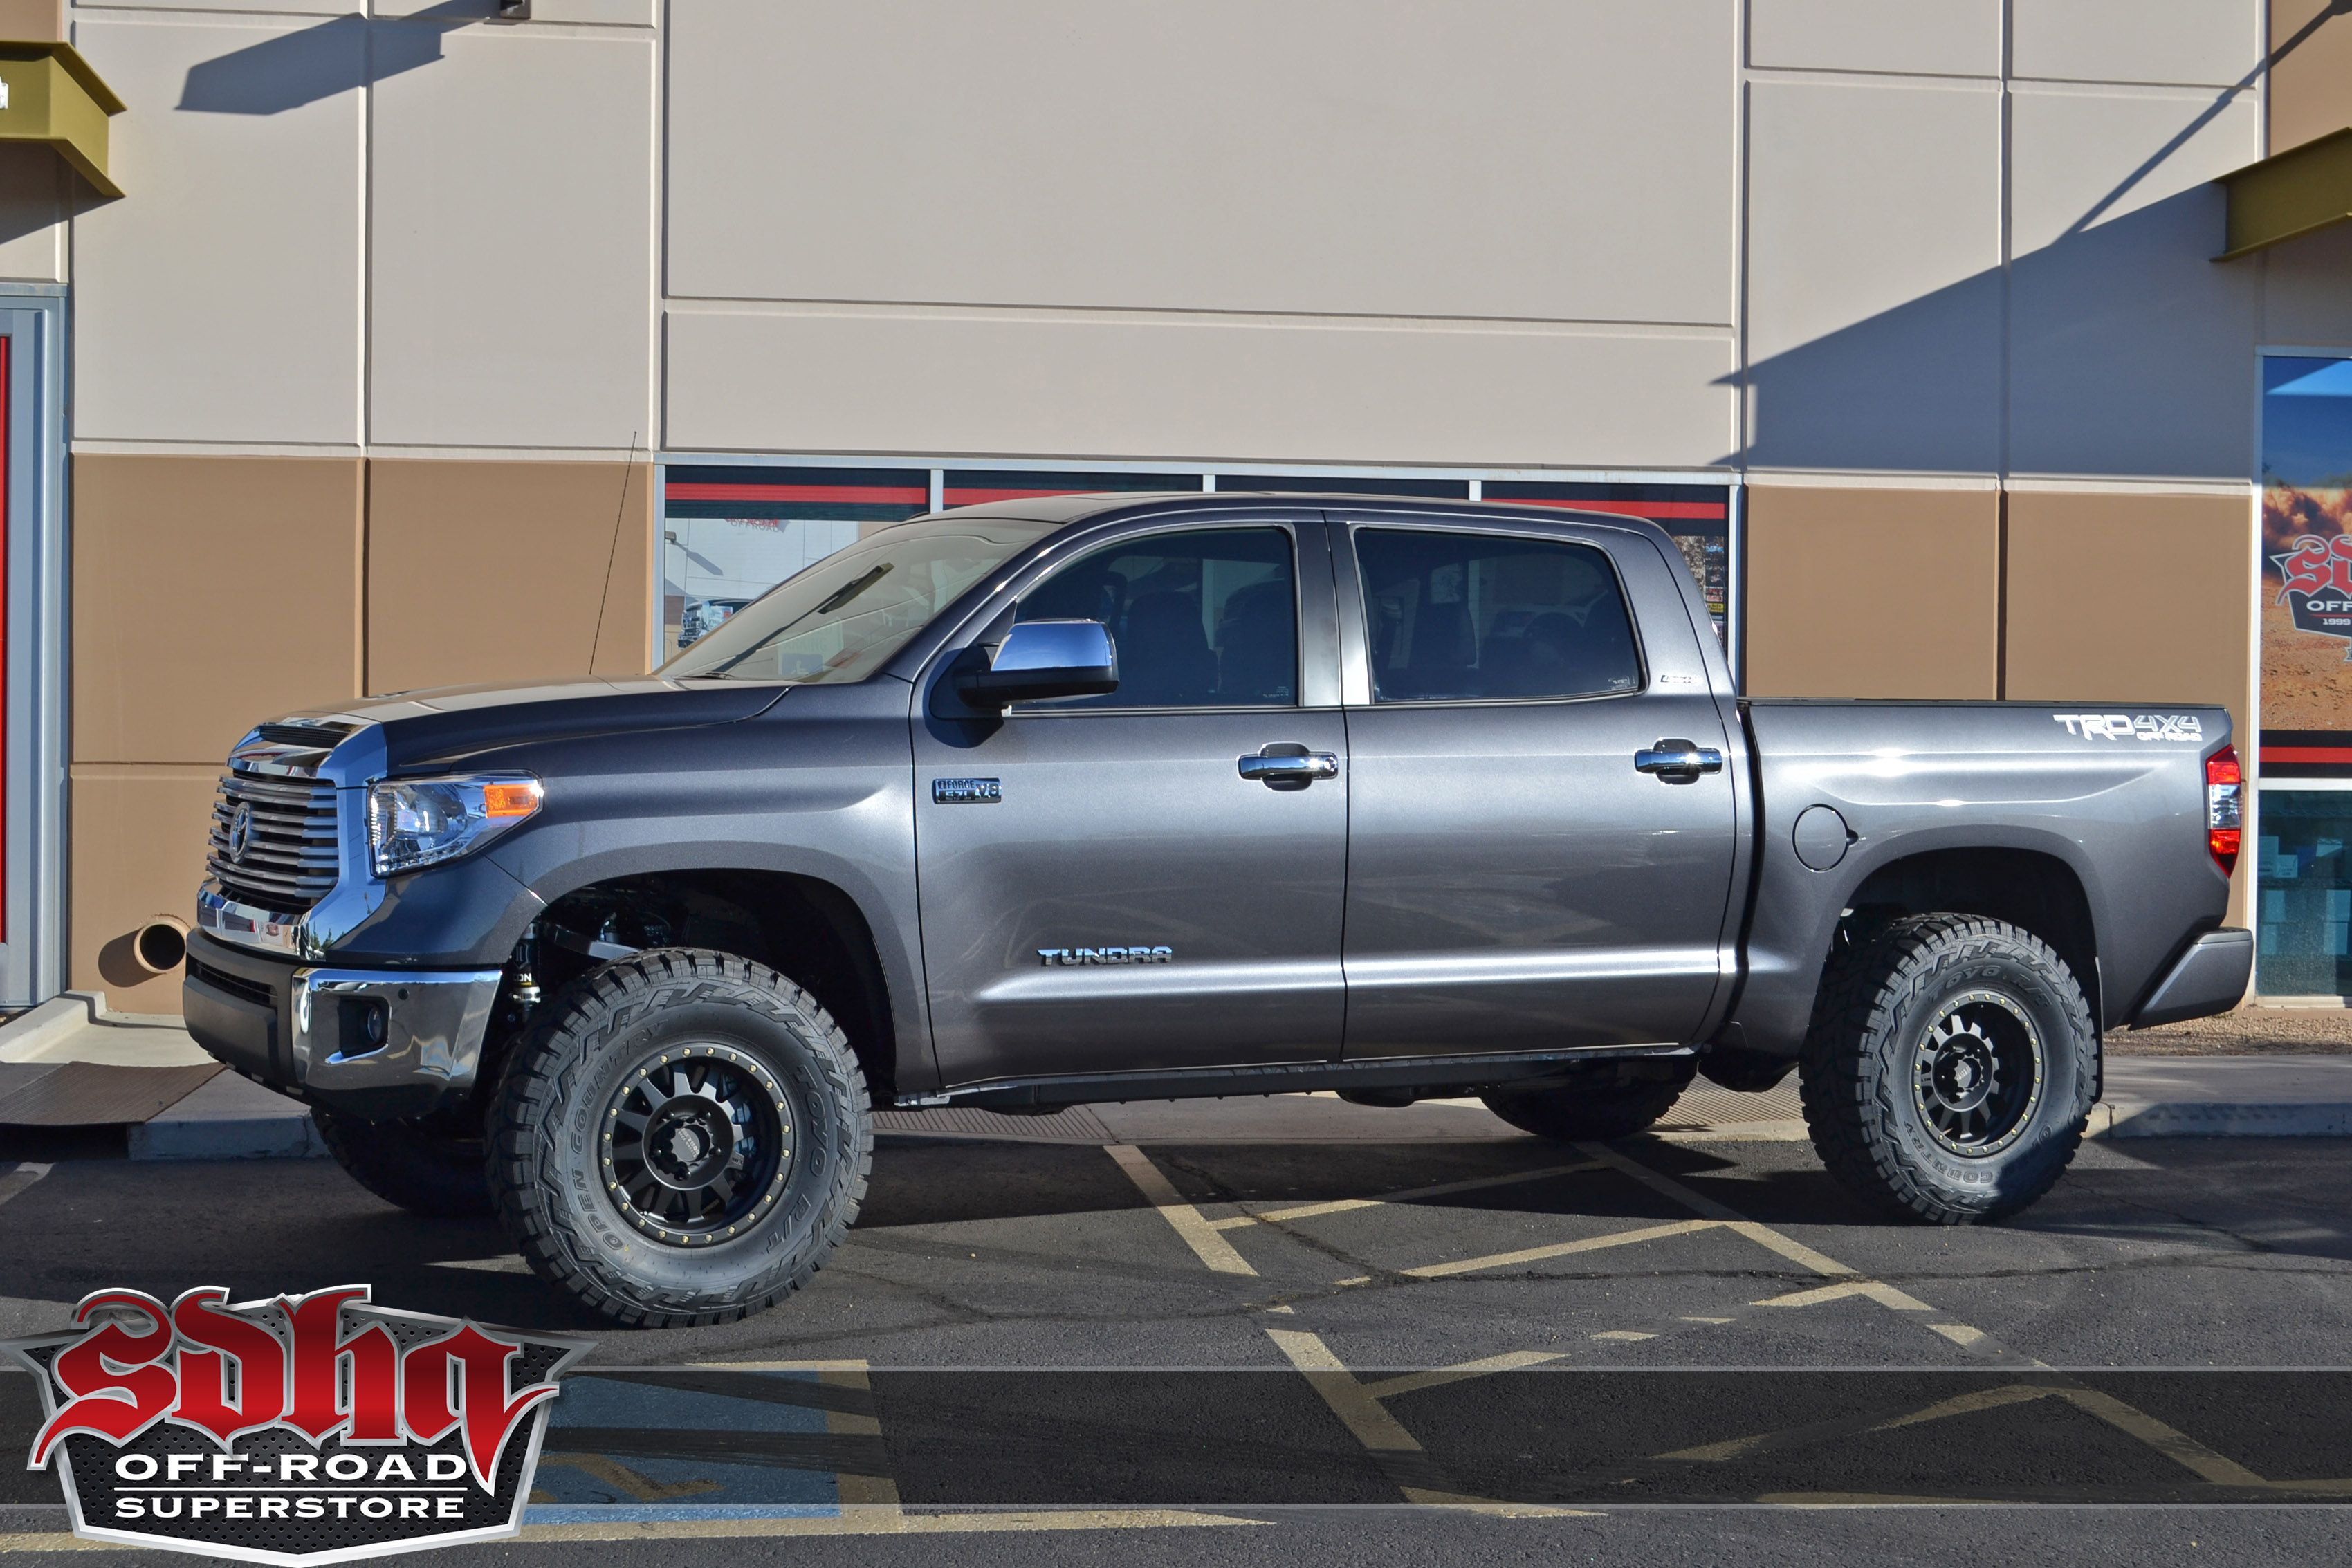 Ryan's Tundra » SDHQ Off Road Truck Wheels/Tires